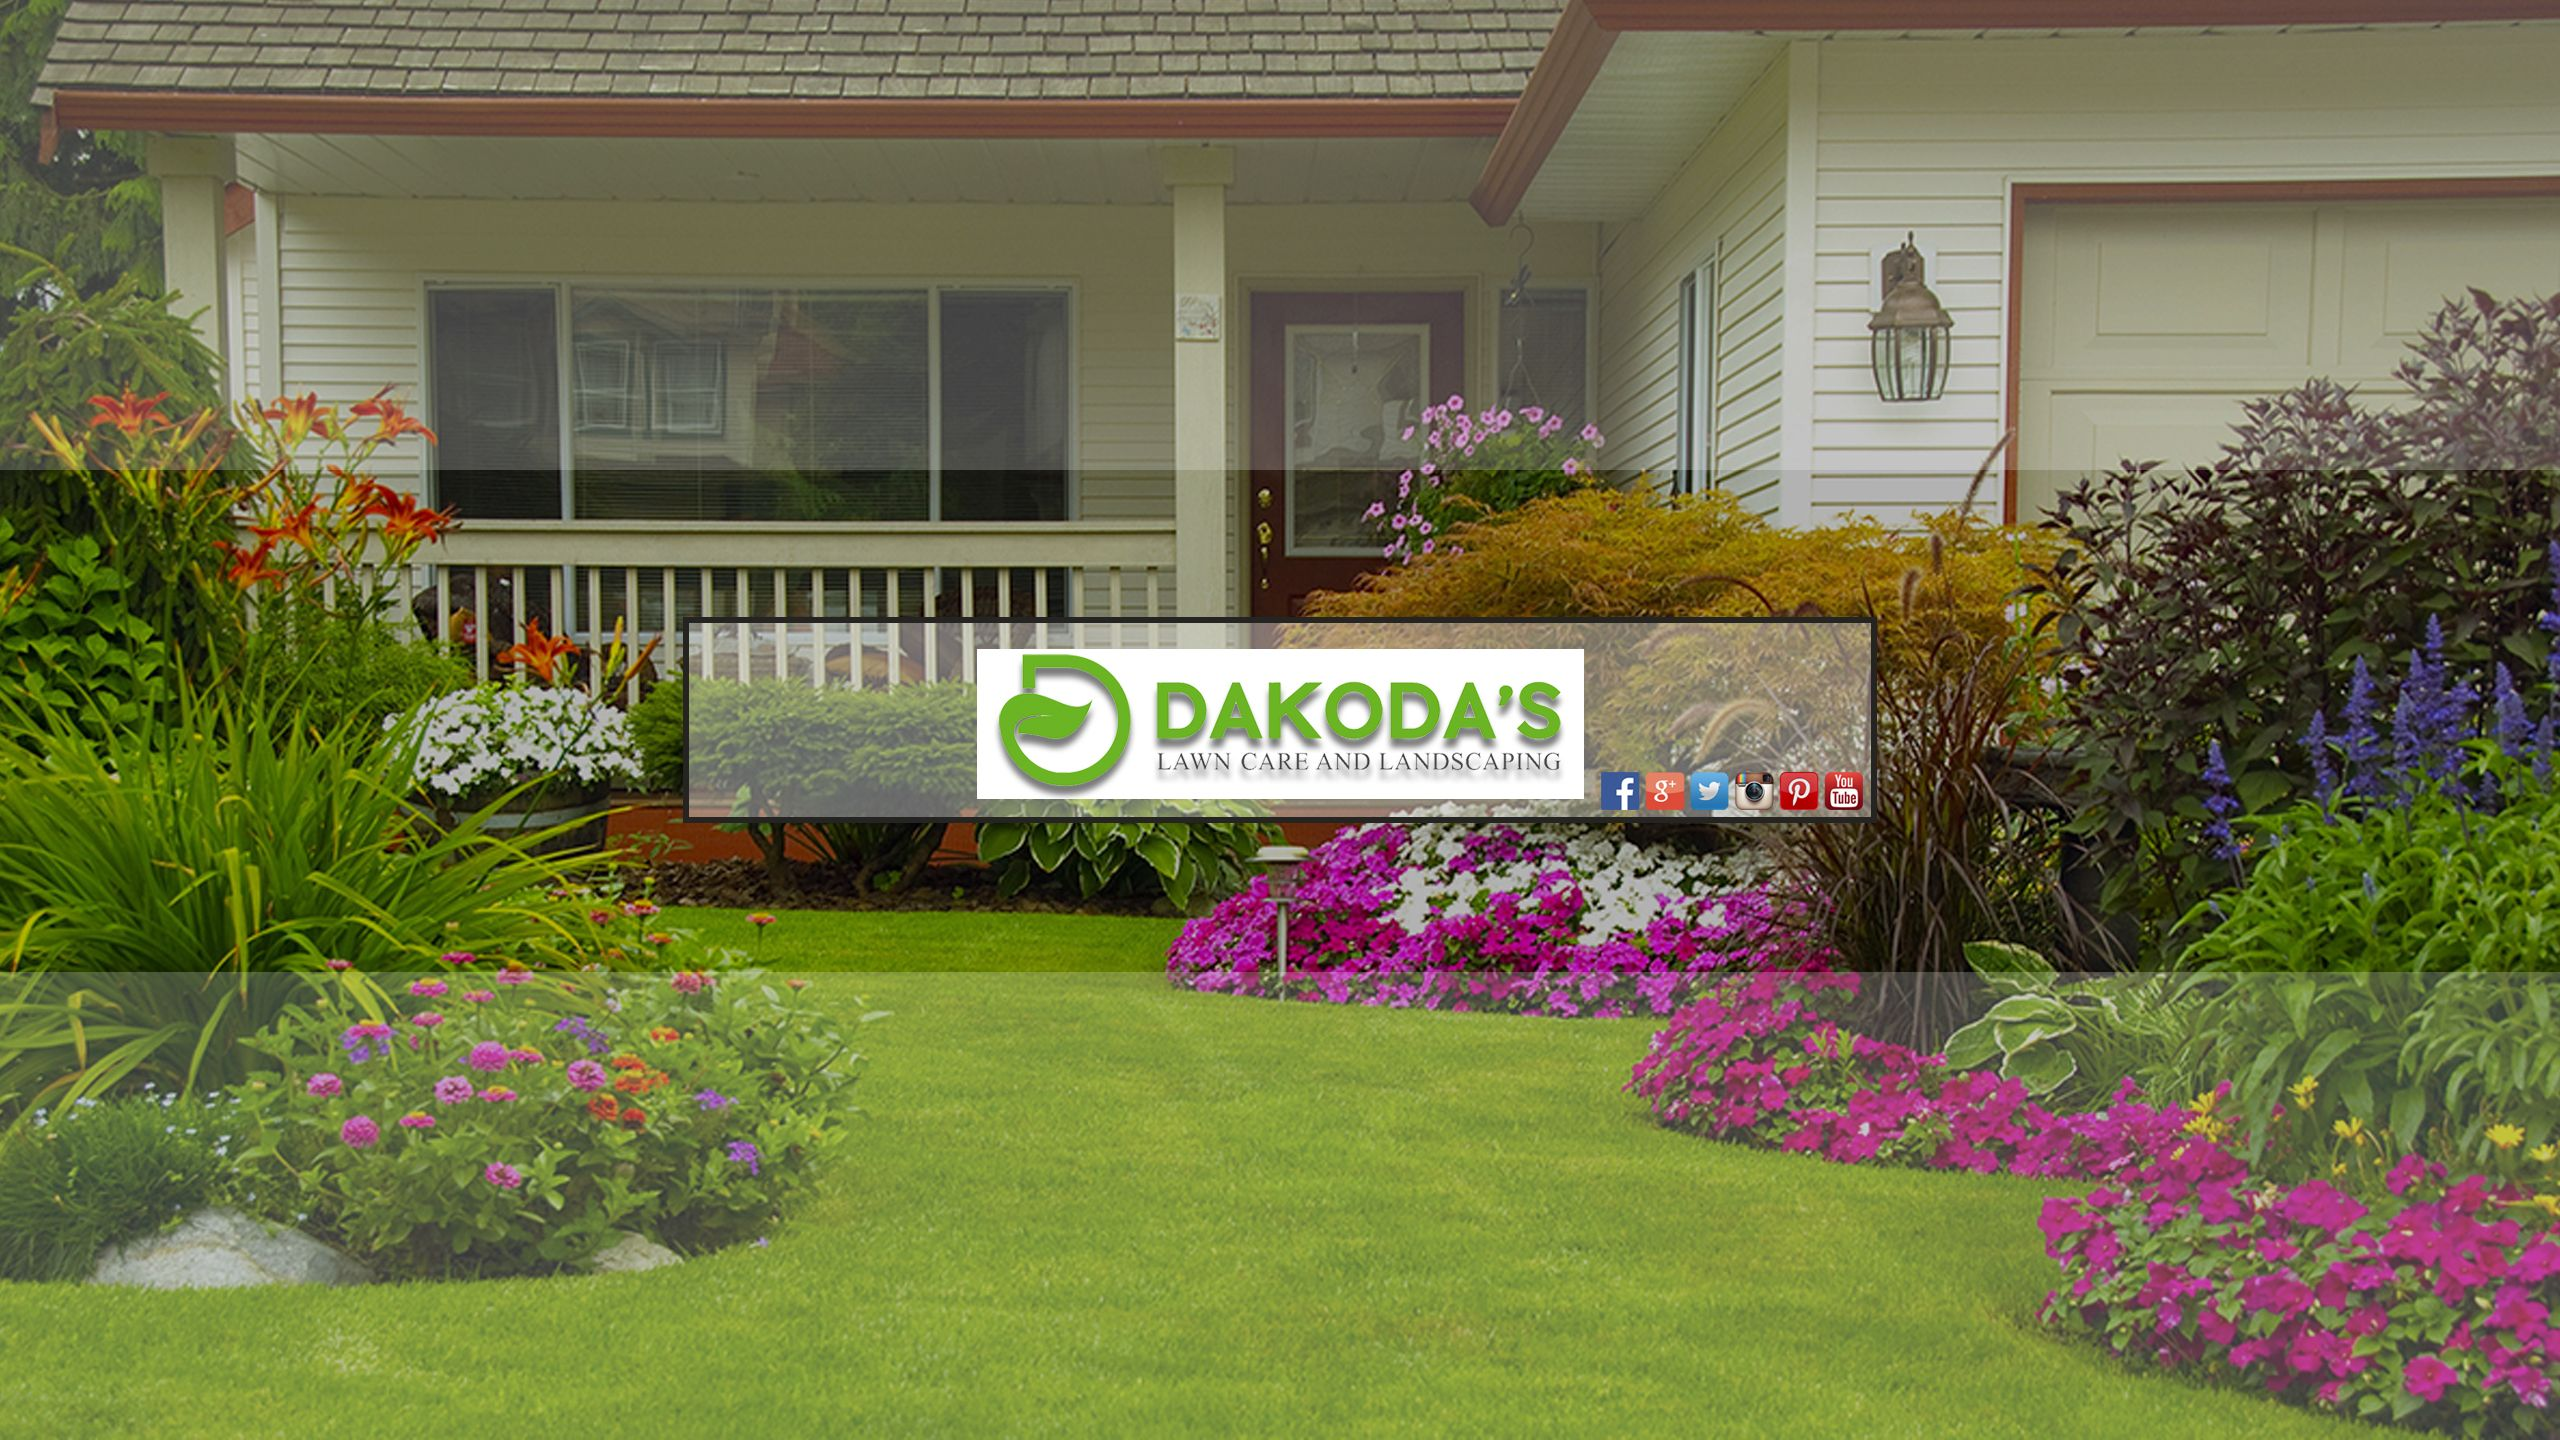 Dakoda S Lawn Care And Landscaping Is A Service In Adams Tn We Offer